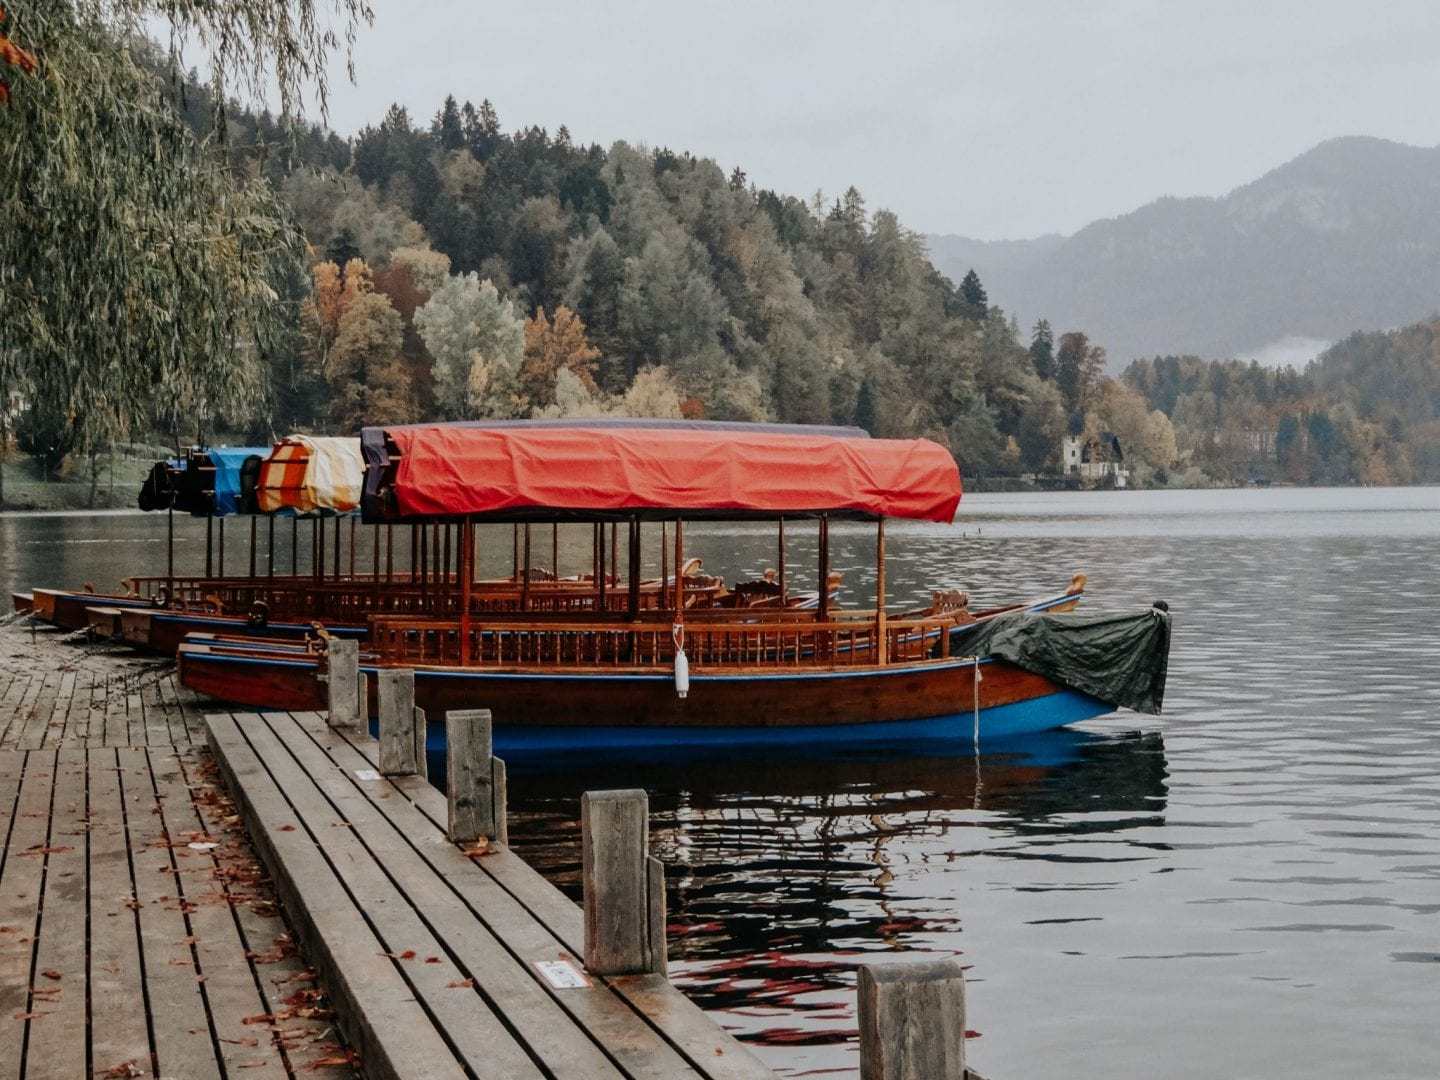 Boats of lake Bled, Slovenia